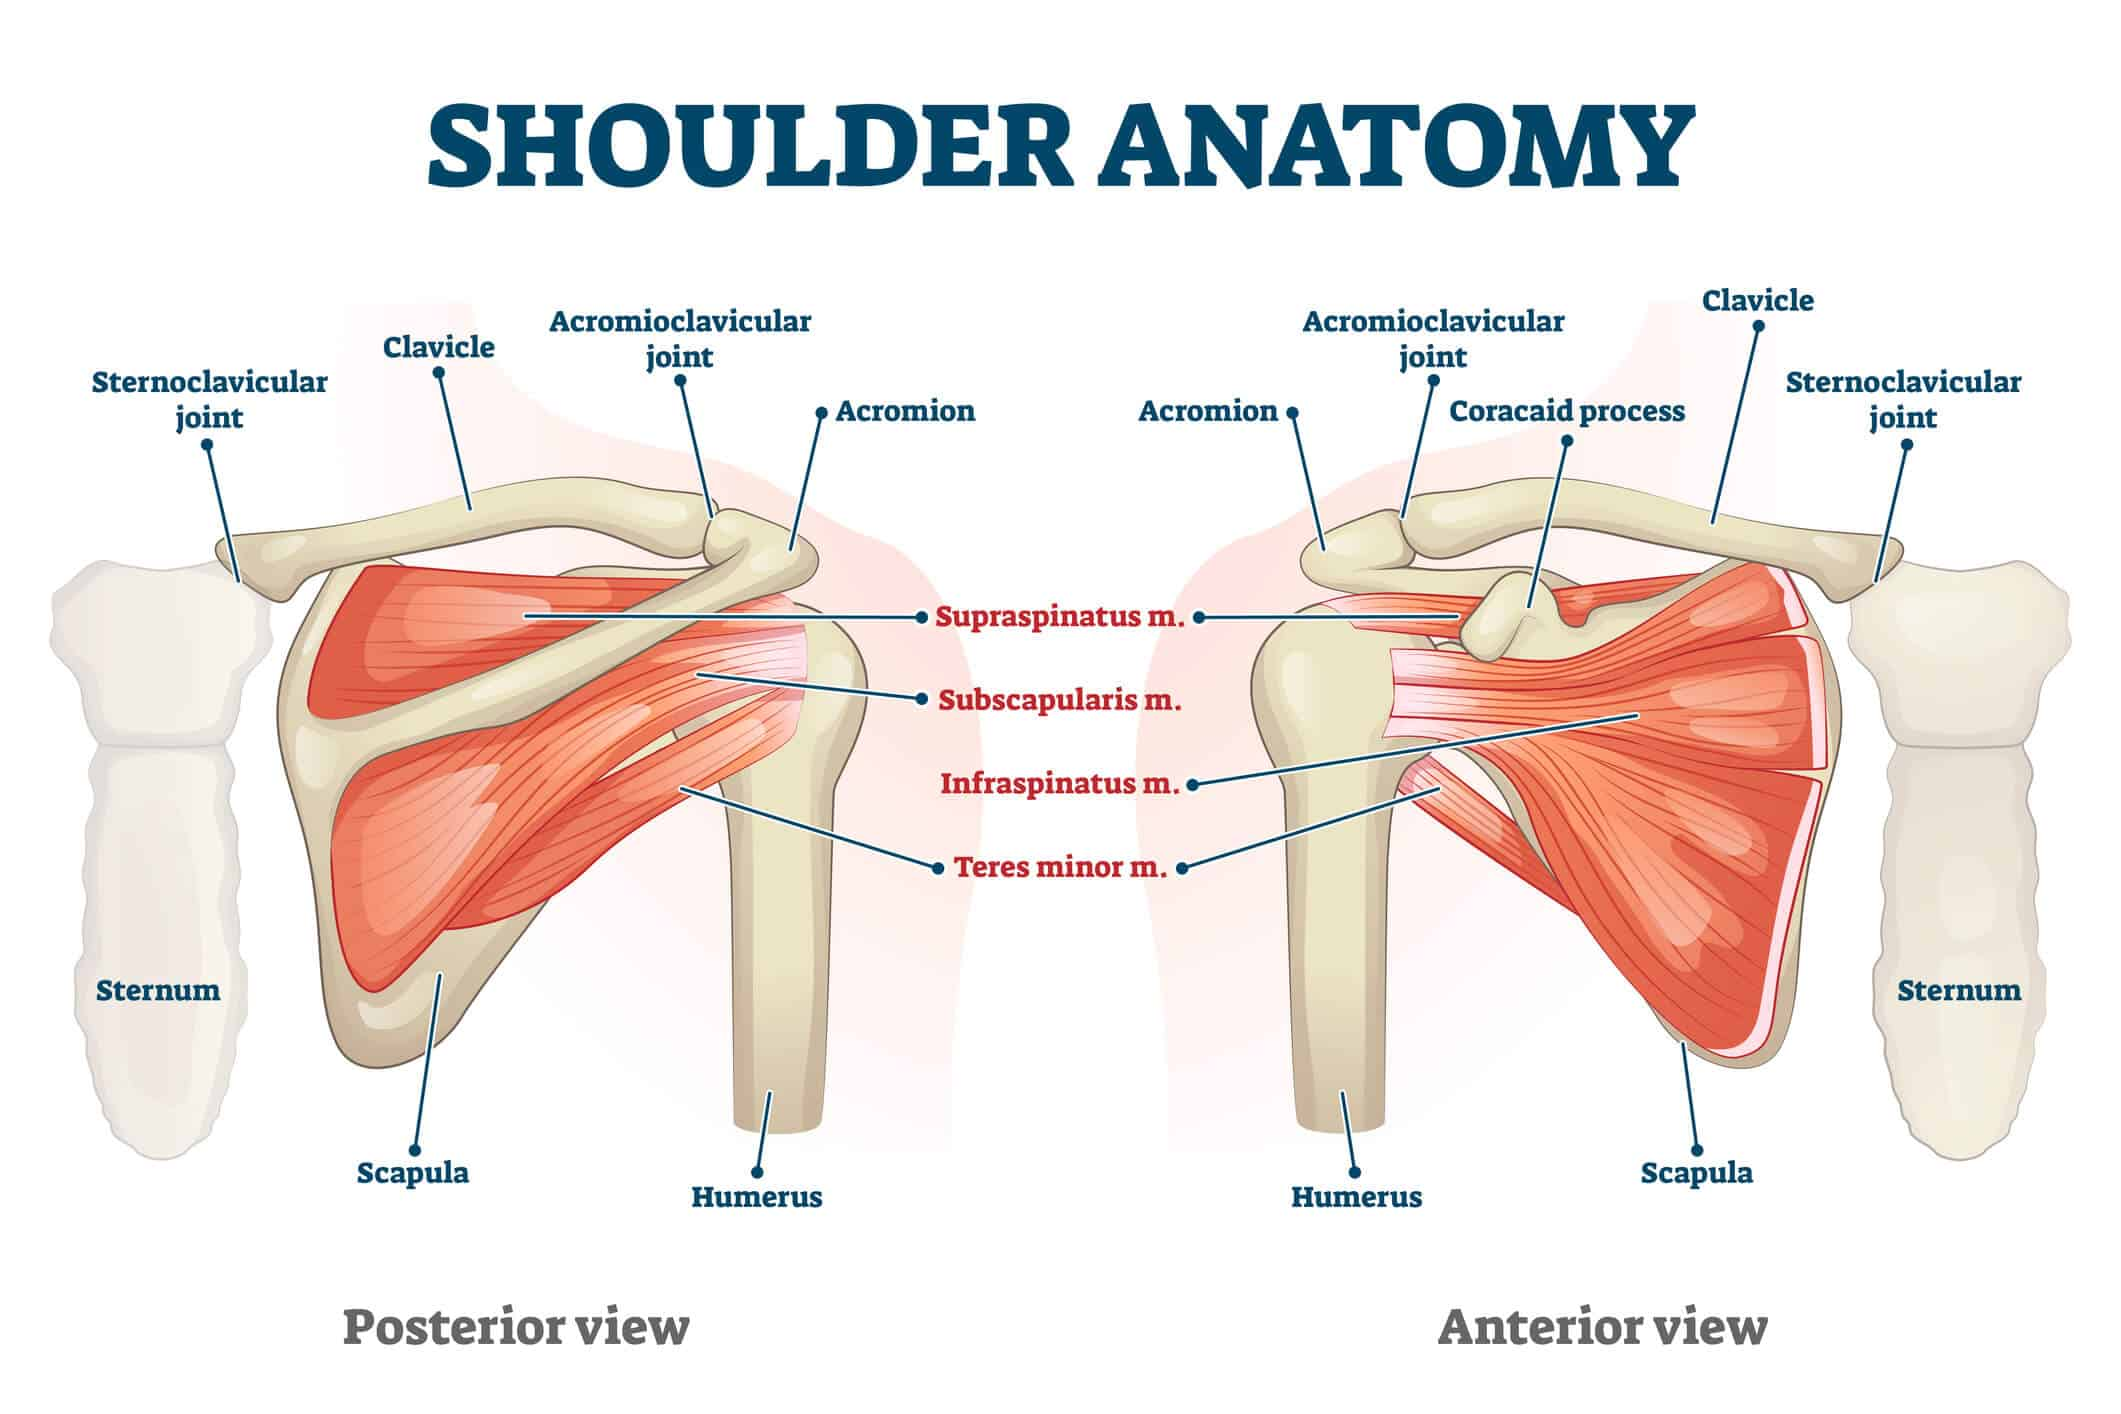 Image of the anatomy of the shoulder, including the clavicle, humerus and scapula that are enclosed in tissue that is affected by frozen shoulder.